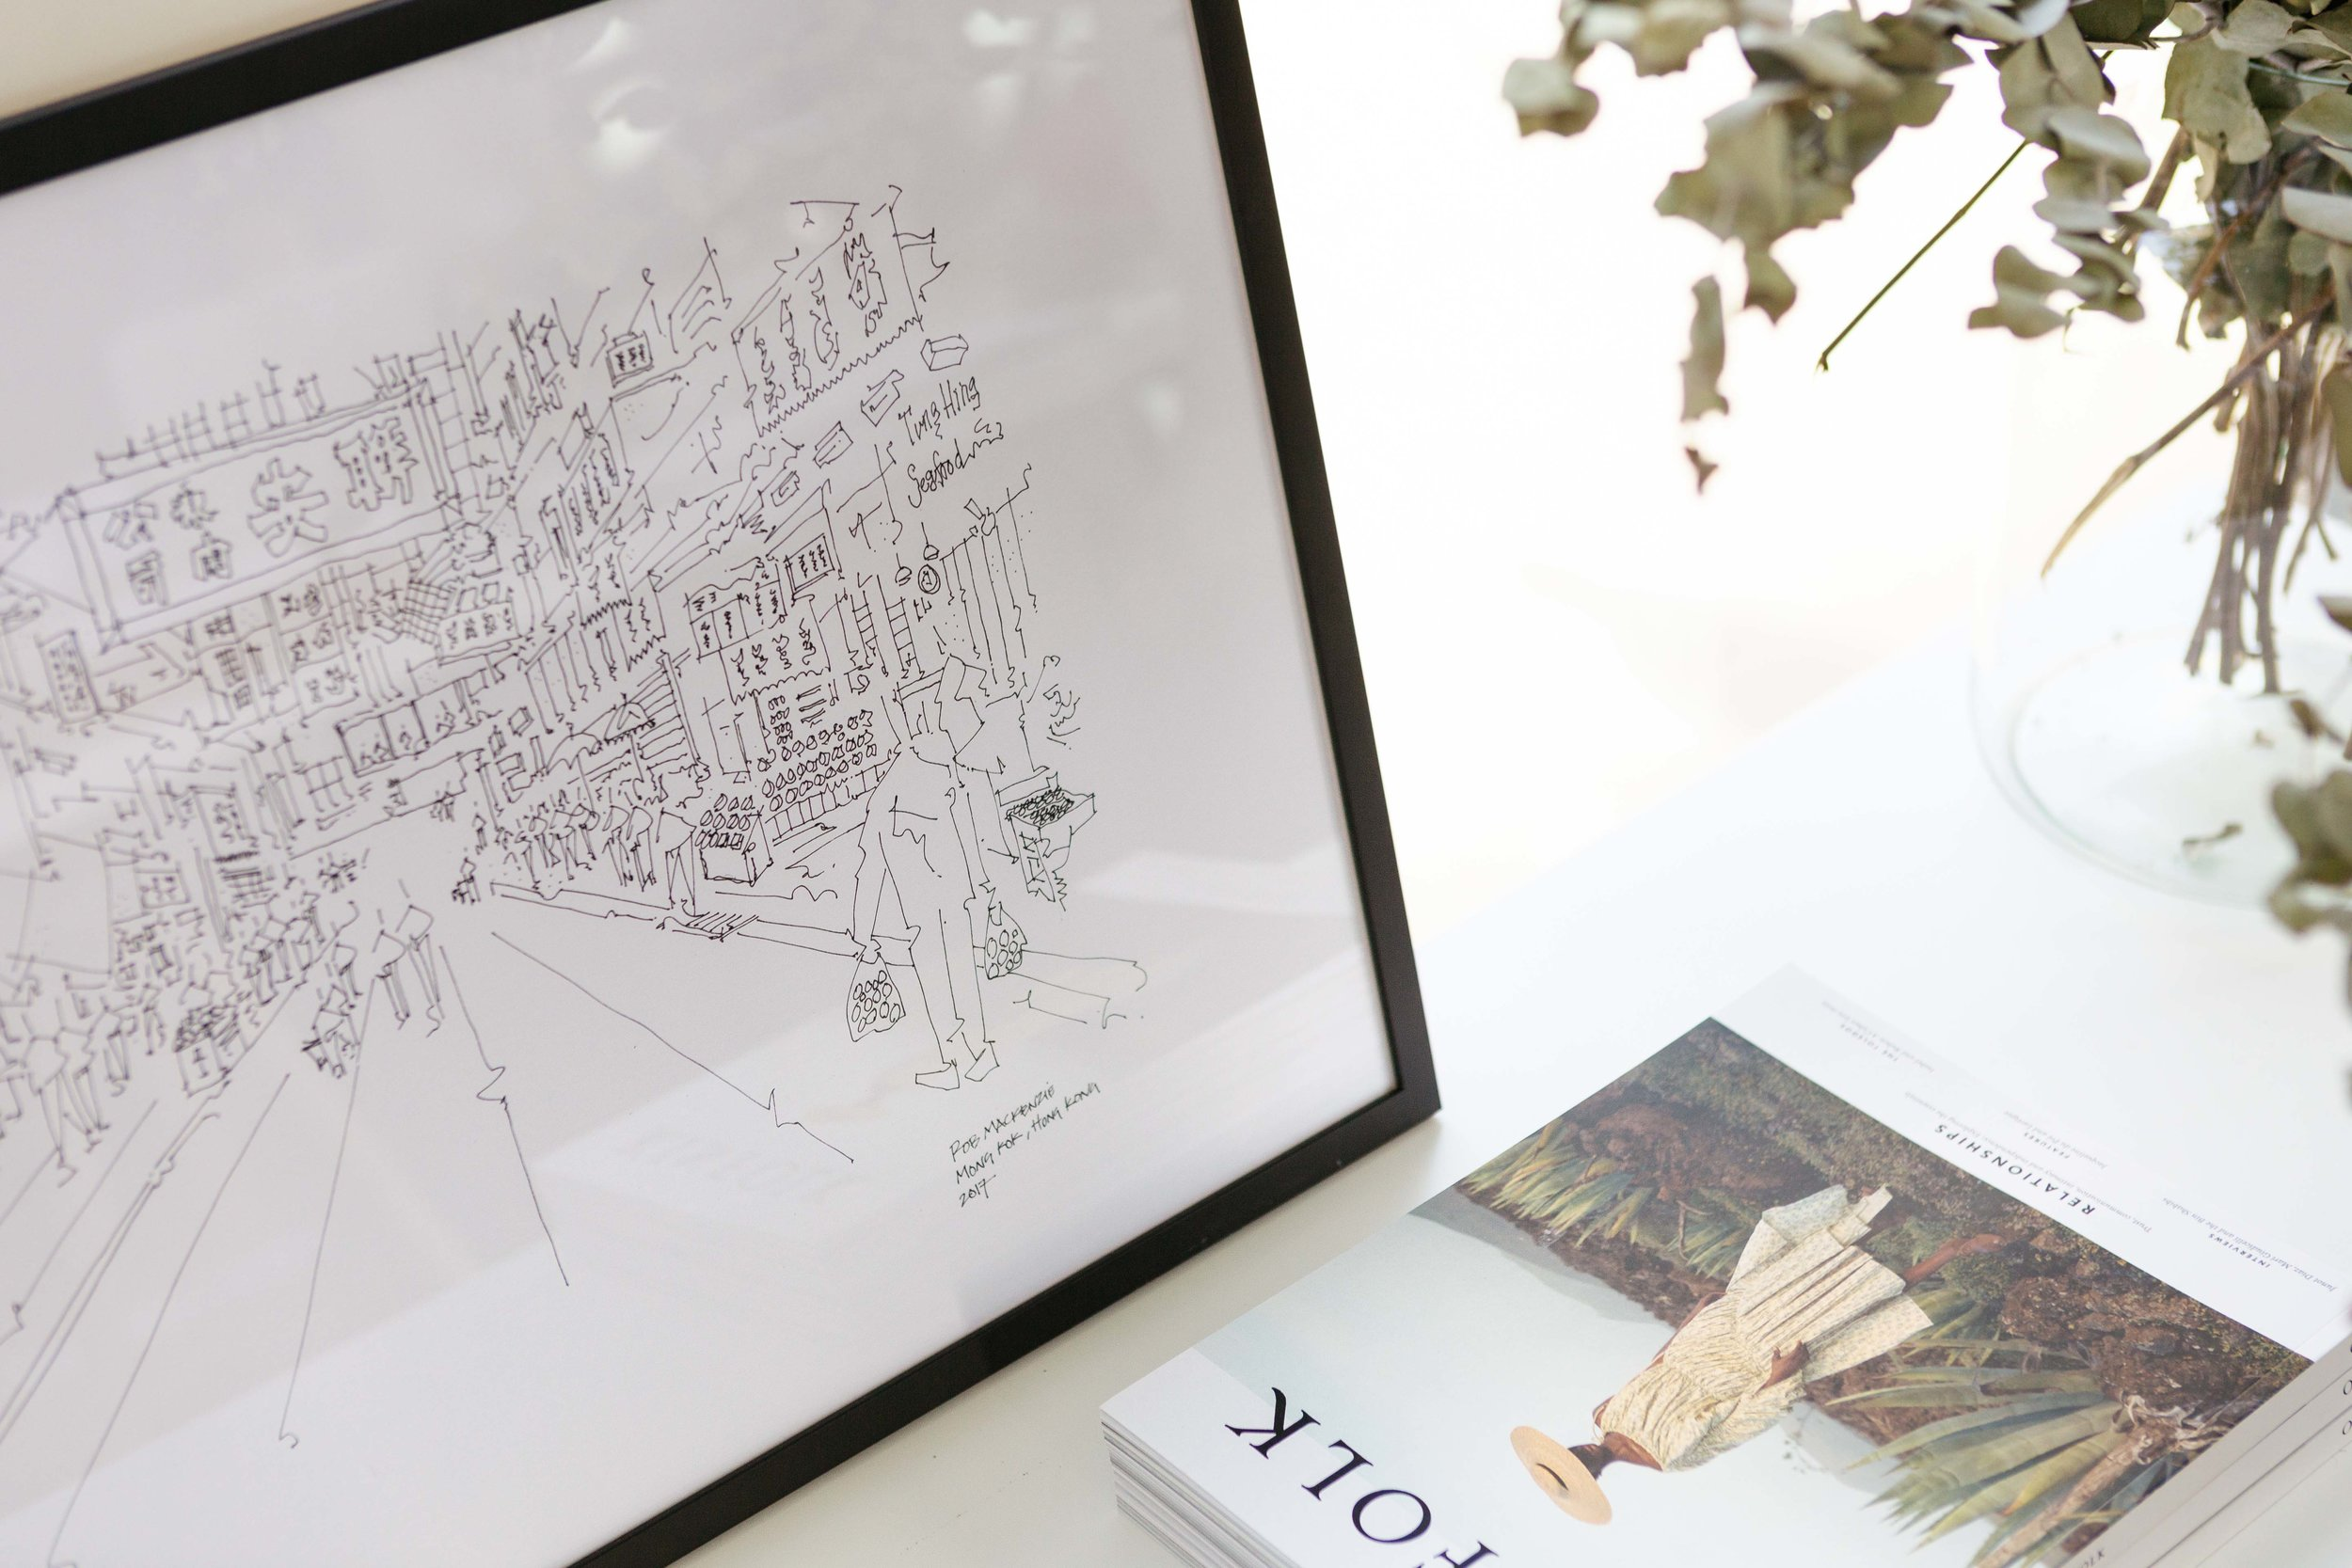 Styled product image of hand drawn art with a magazine in the foreground and greenery to the back. Image by Natasha Boyes Photography.